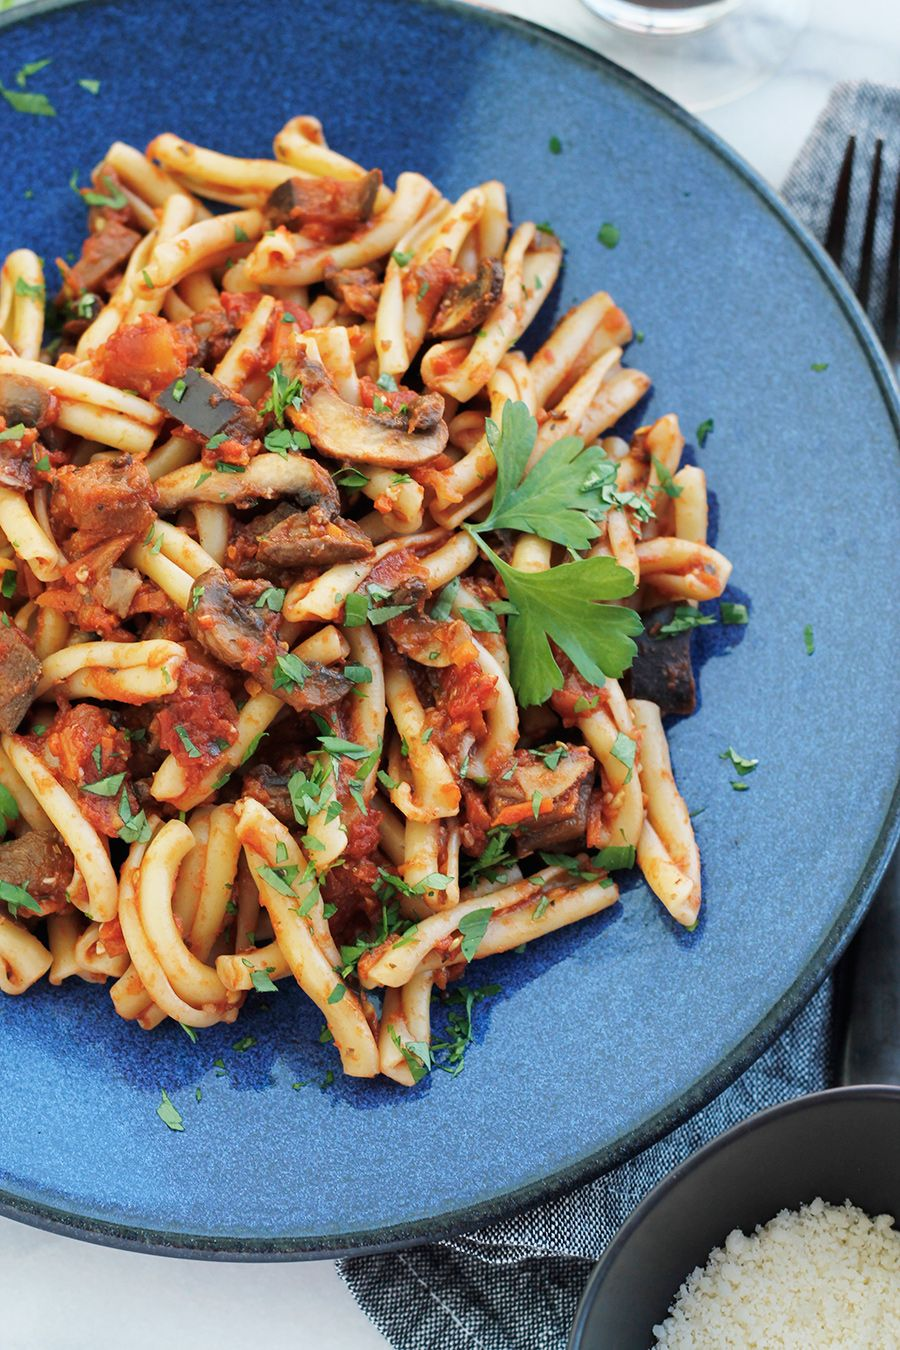 Vegan Eggplant Mushroom Bolognese With Casarecce A Healthy Hearty And Bold With Flavor Pasta Dish Vegan Eggplant Vegan Pasta Recipes Mushroom Recipes Vegan